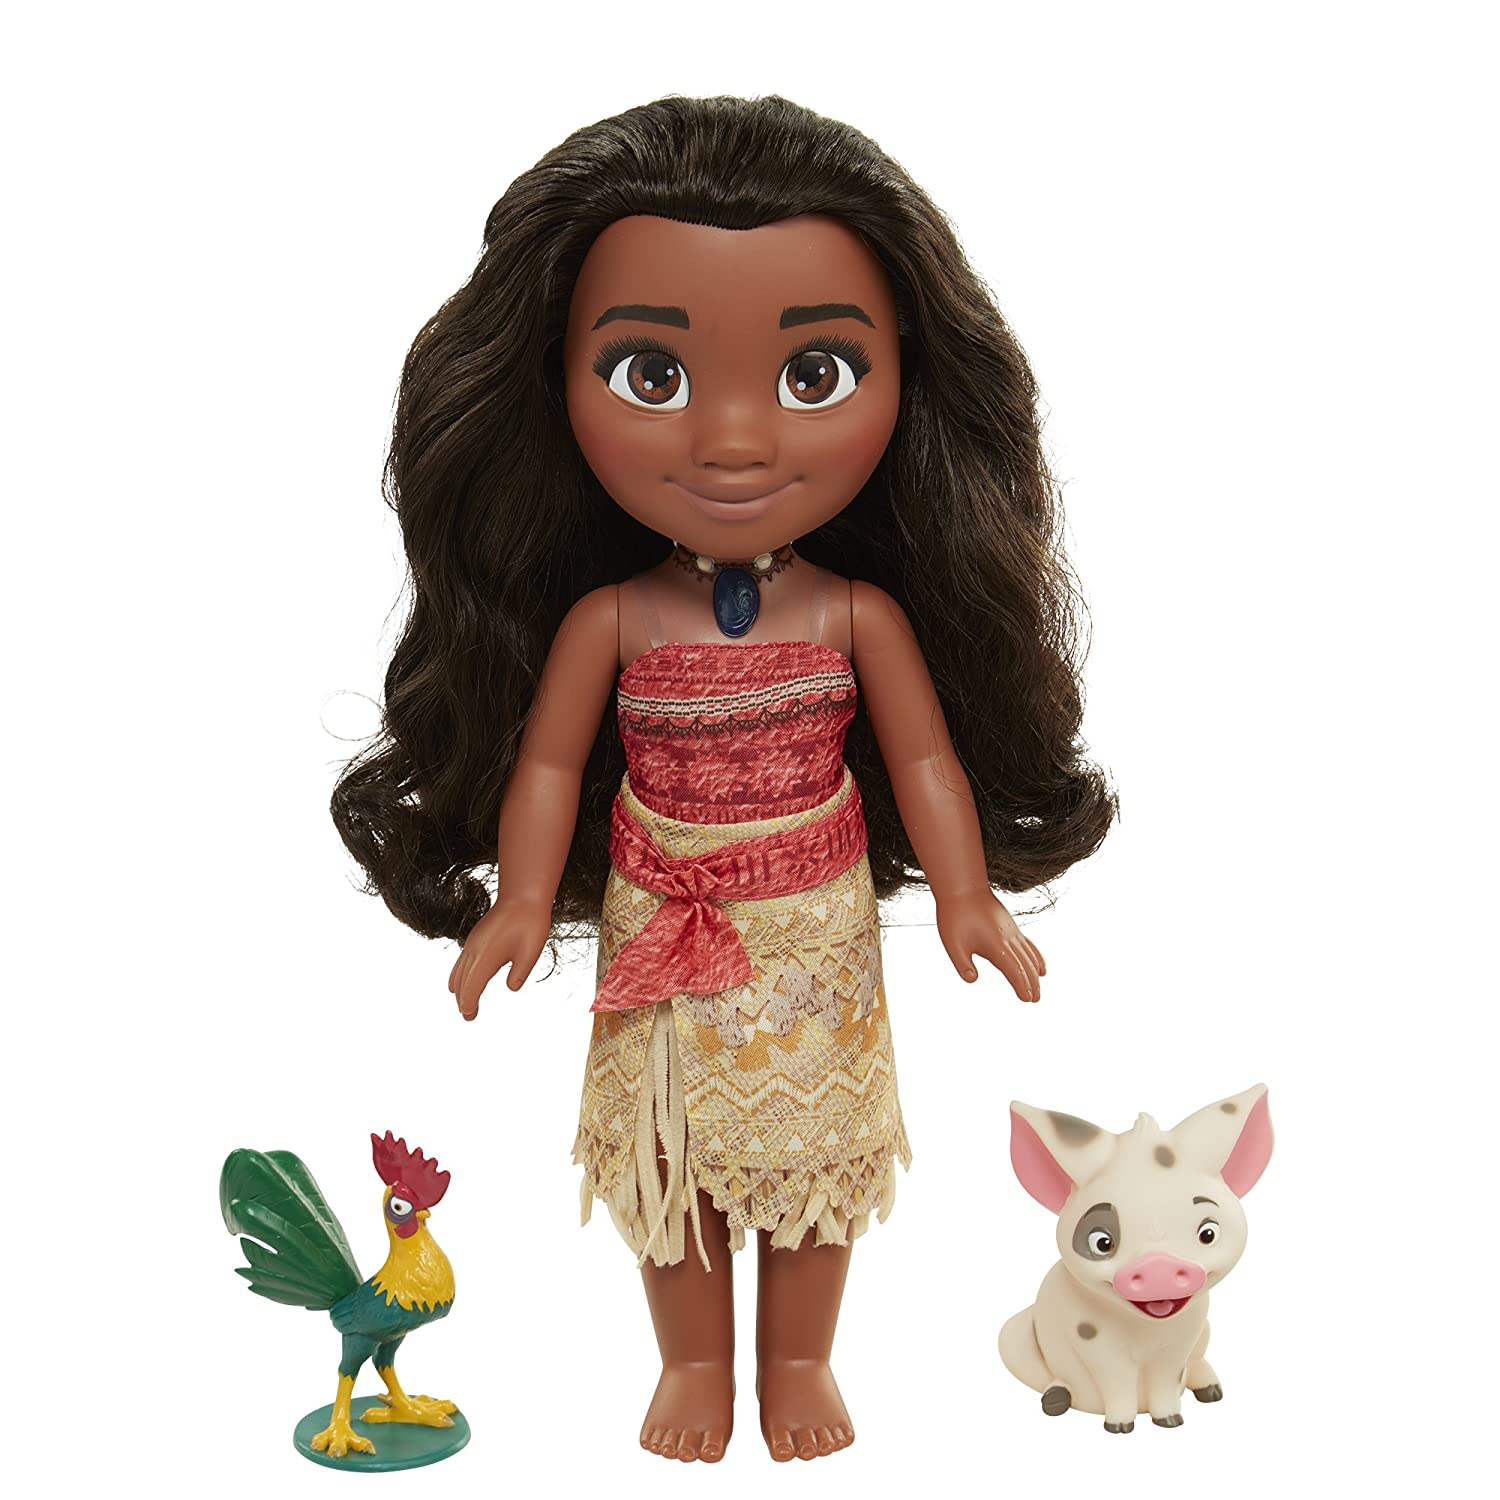 Jakks Pacific - 32750 - Disney Princess Poupée, Multicolore